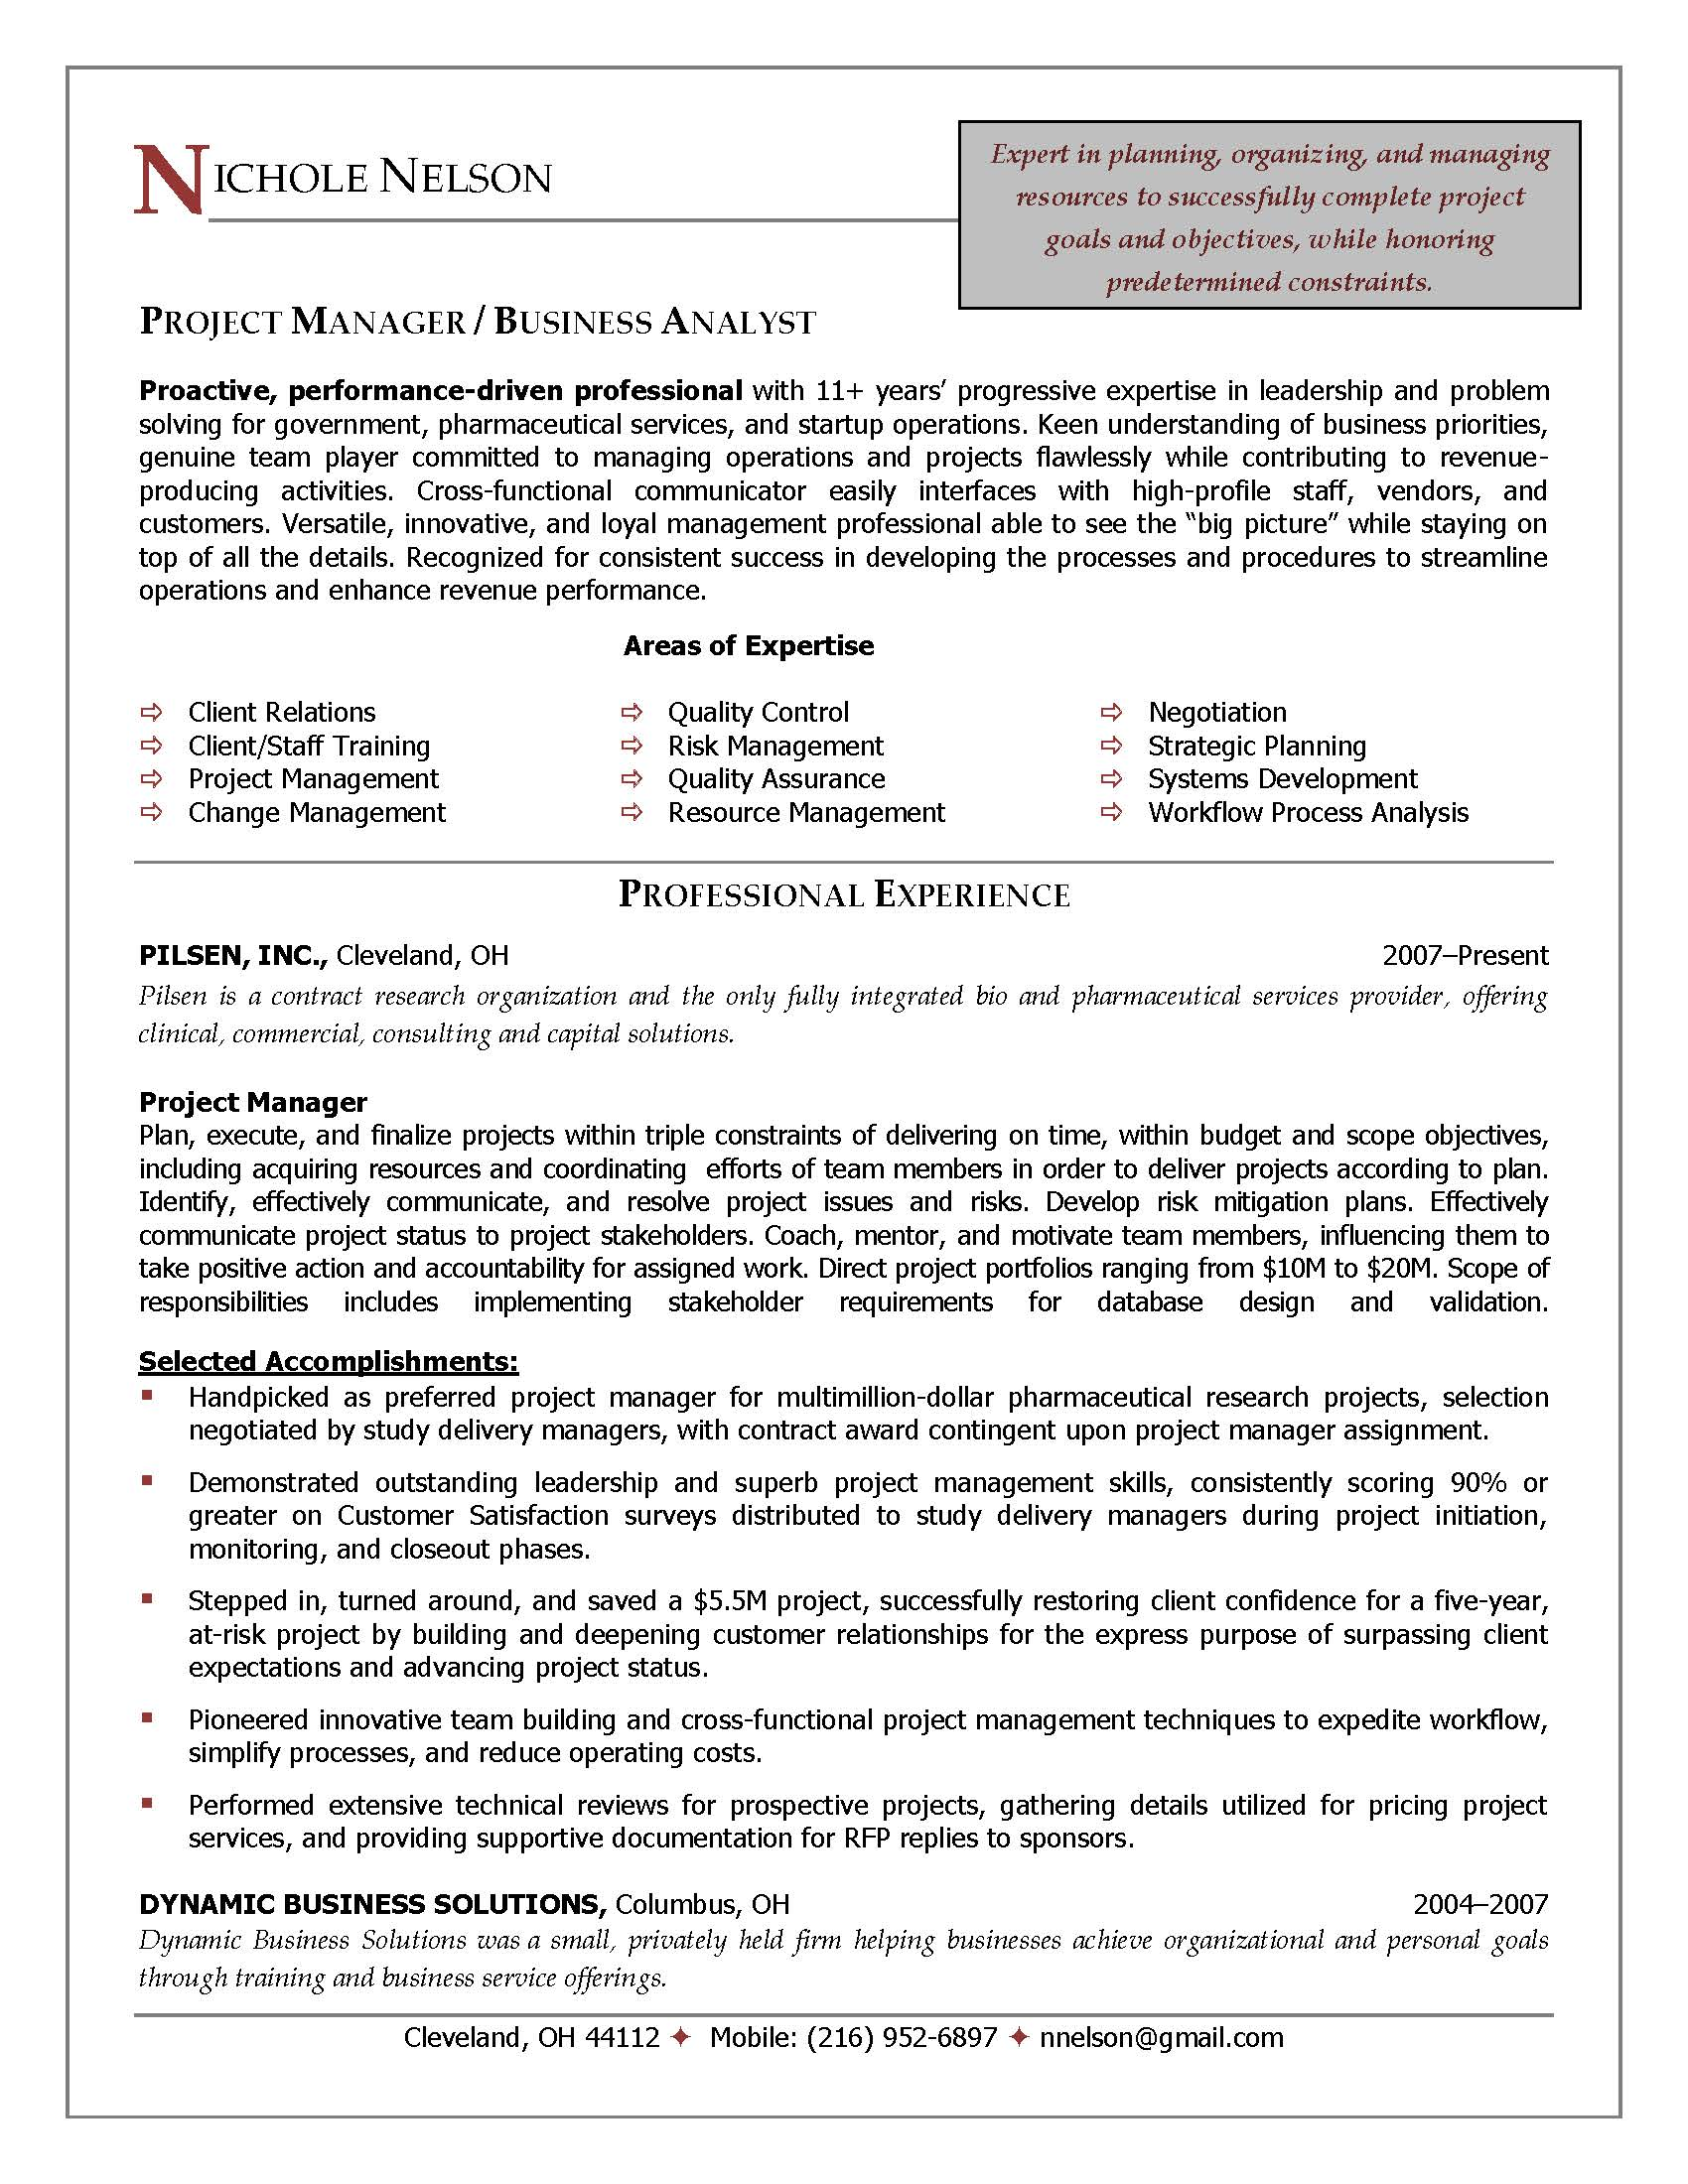 project manager resume sample provided by elite resume writing services. Resume Example. Resume CV Cover Letter